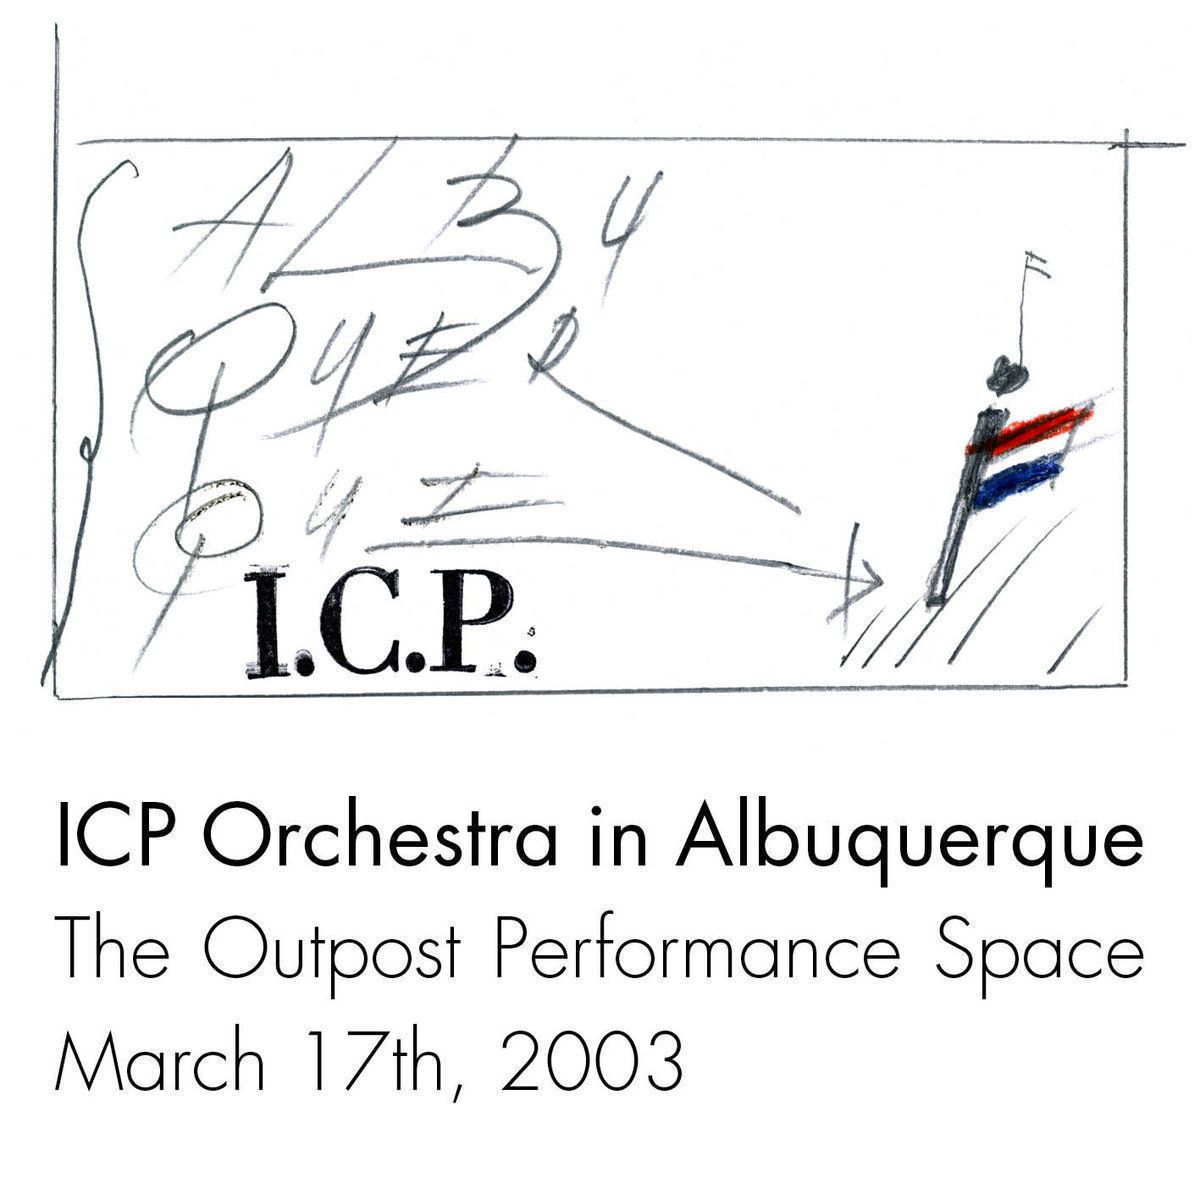 ICP Orchestra in Albuquerque